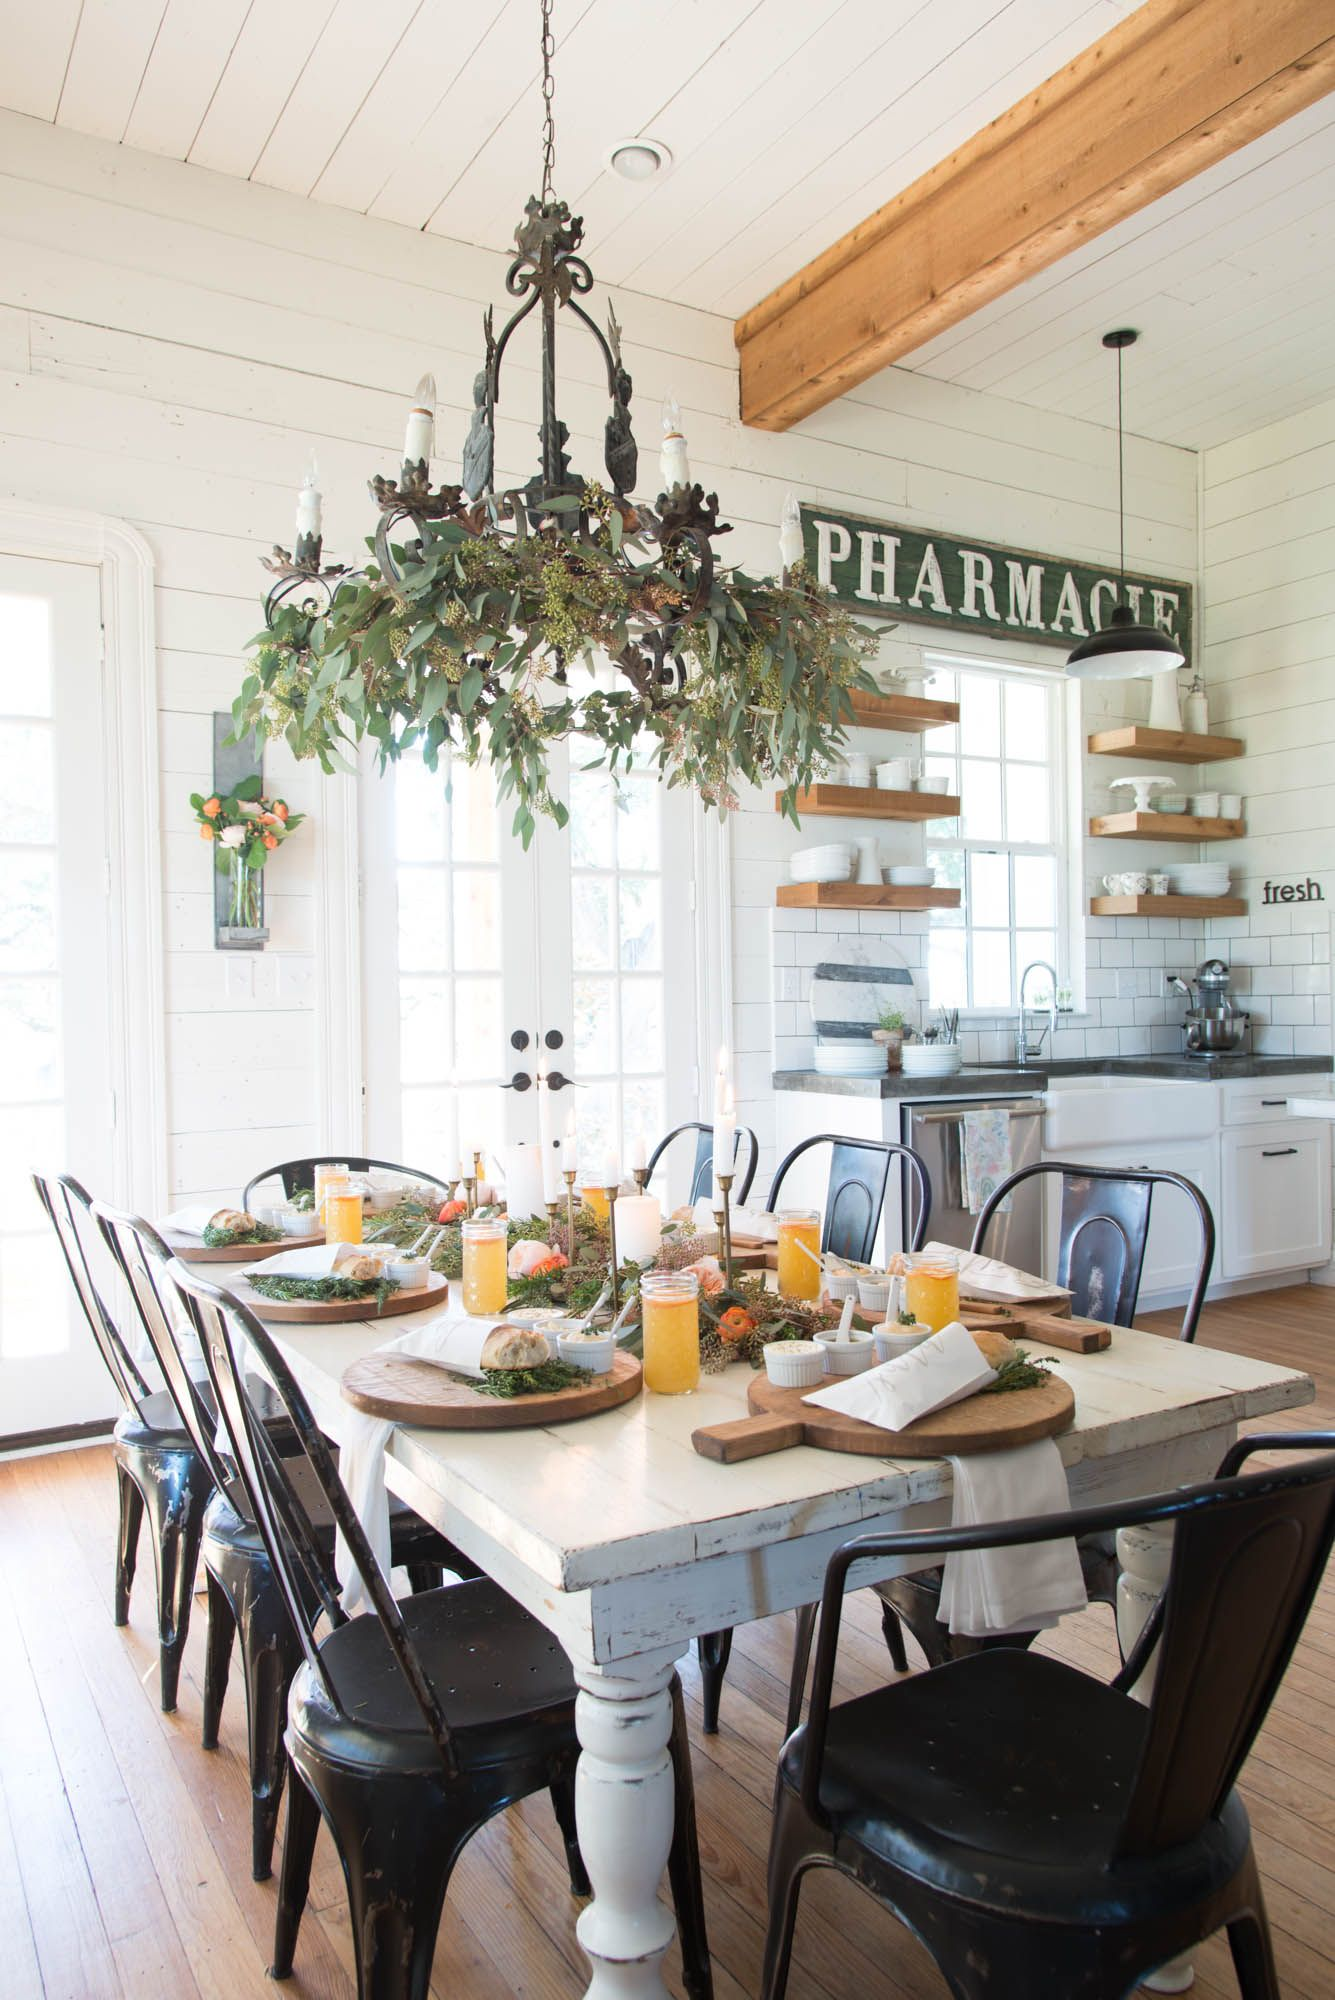 A Winter Dinner Party Home Remodel Farmhouse Table Dining Room Design Farmhouse Decor